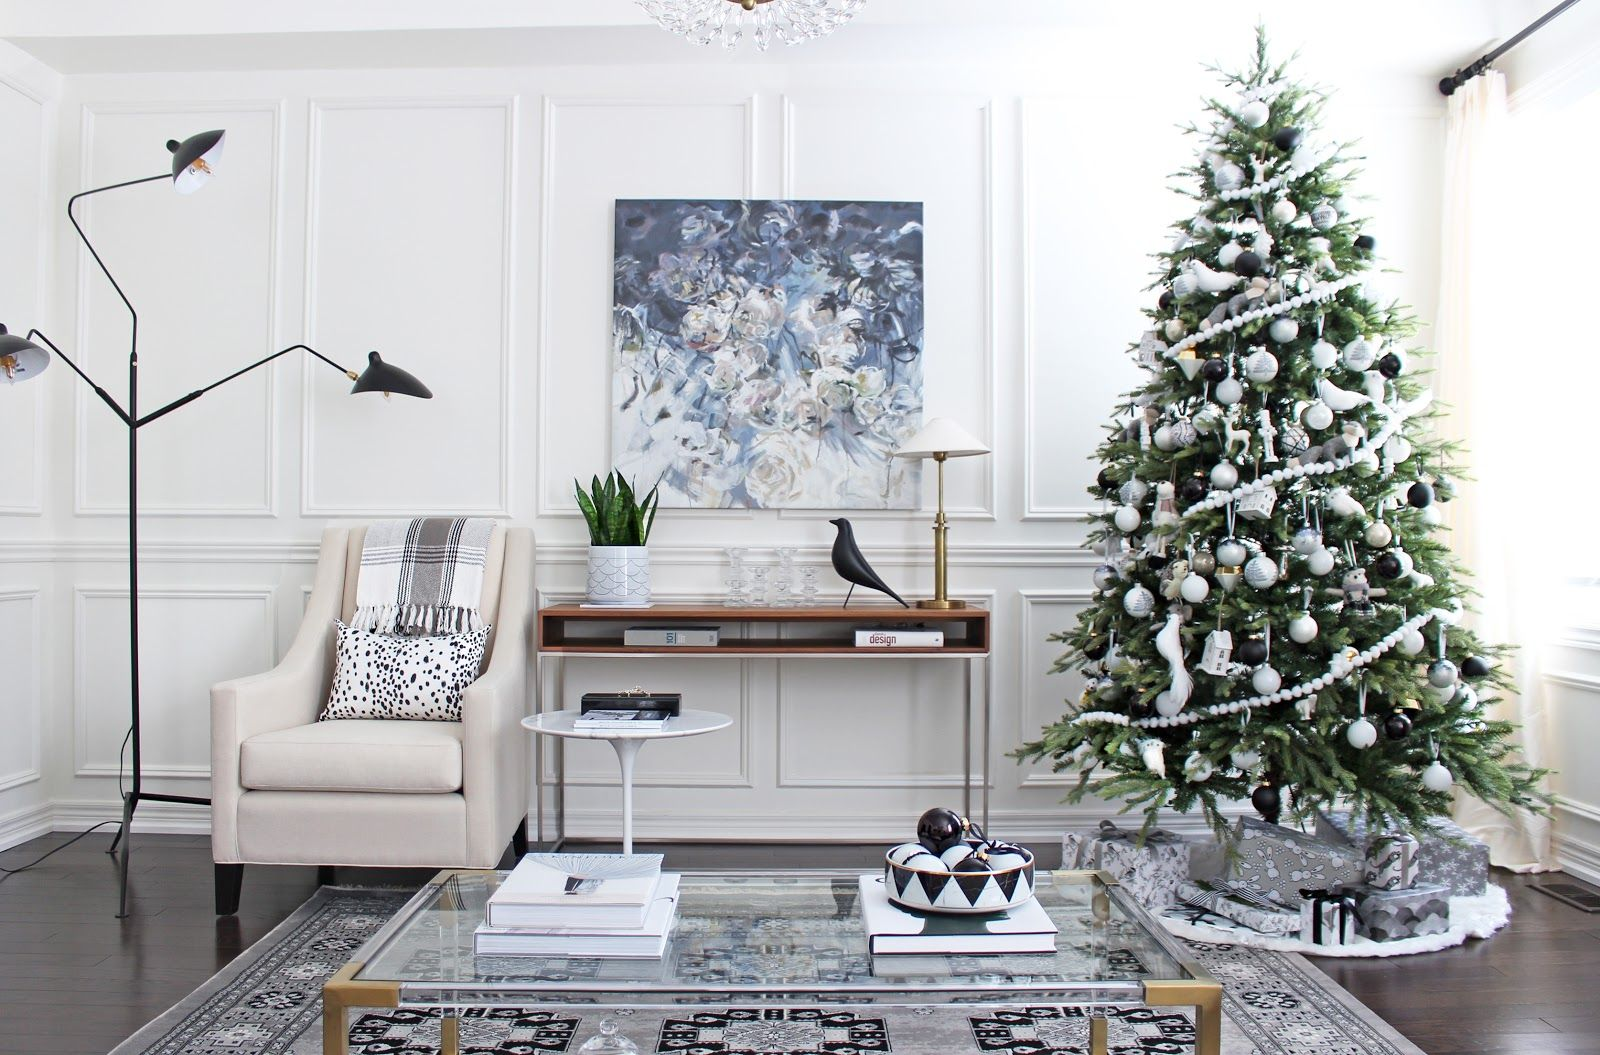 Serge Mouille Floor Lamp, Black And White Christmas Decor, Black And White  Christmas Tree